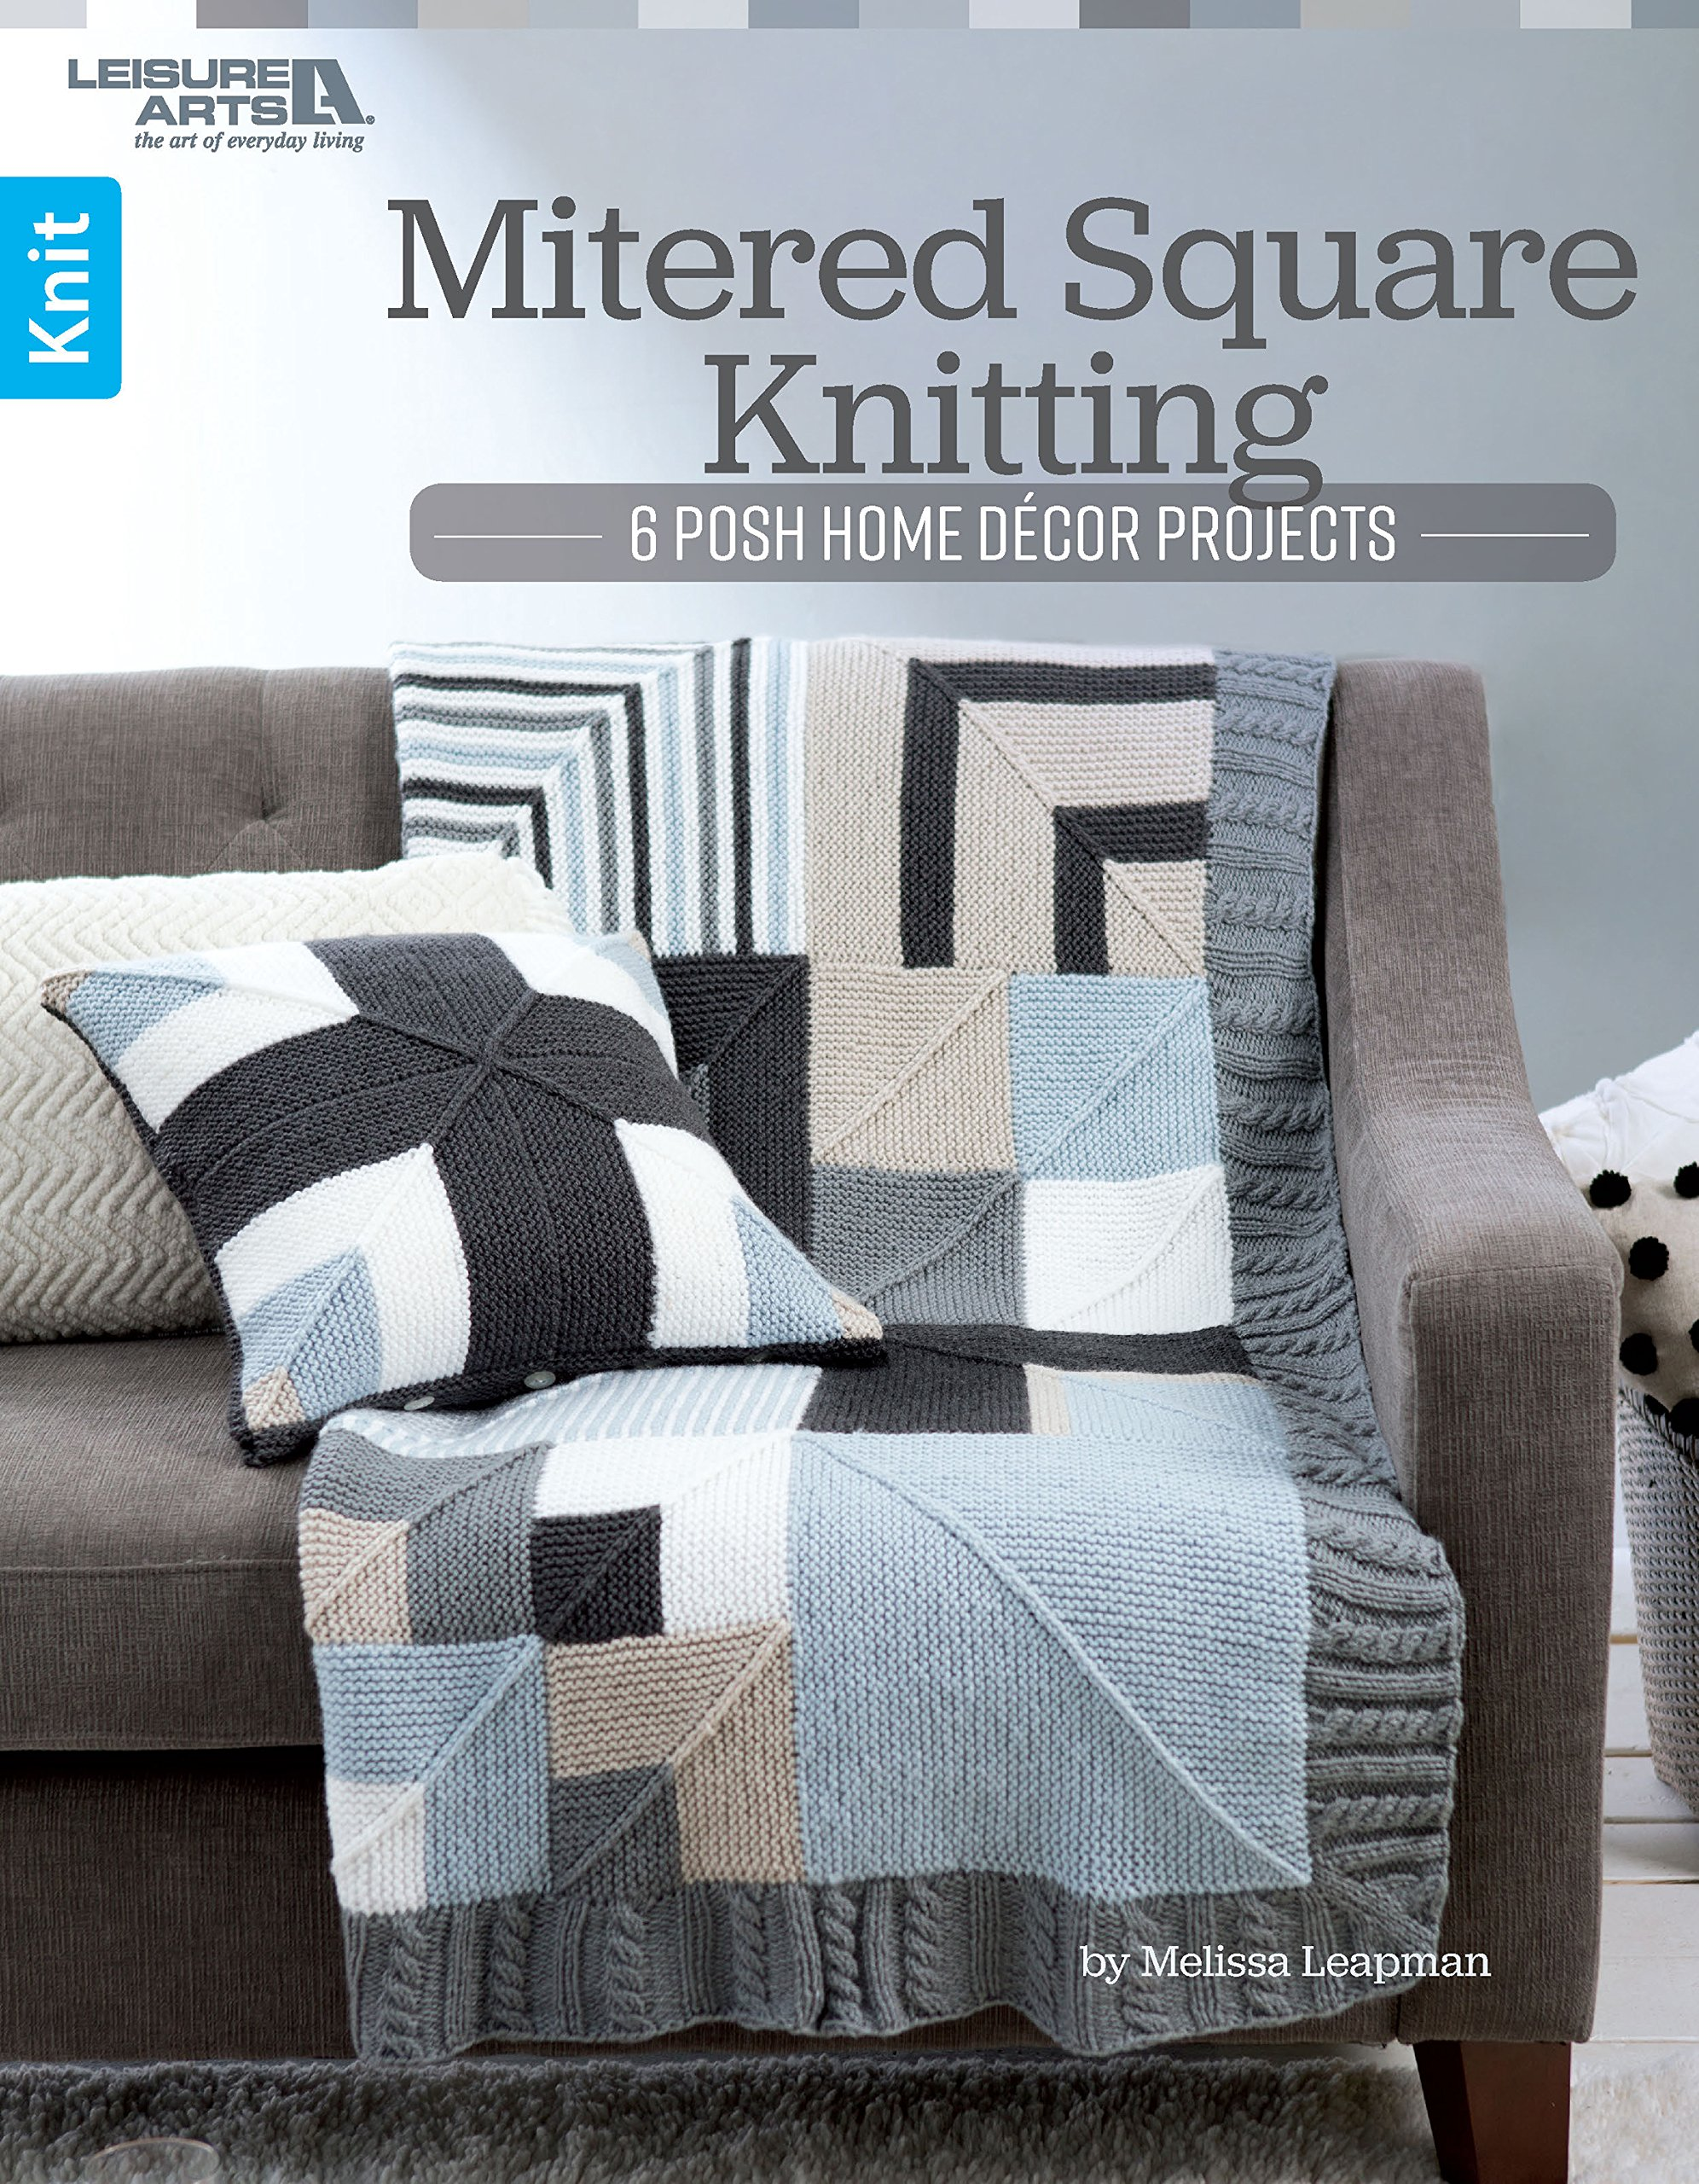 Mitered Square Knitting 6 Posh Home Decor Projects Melissa Leapman